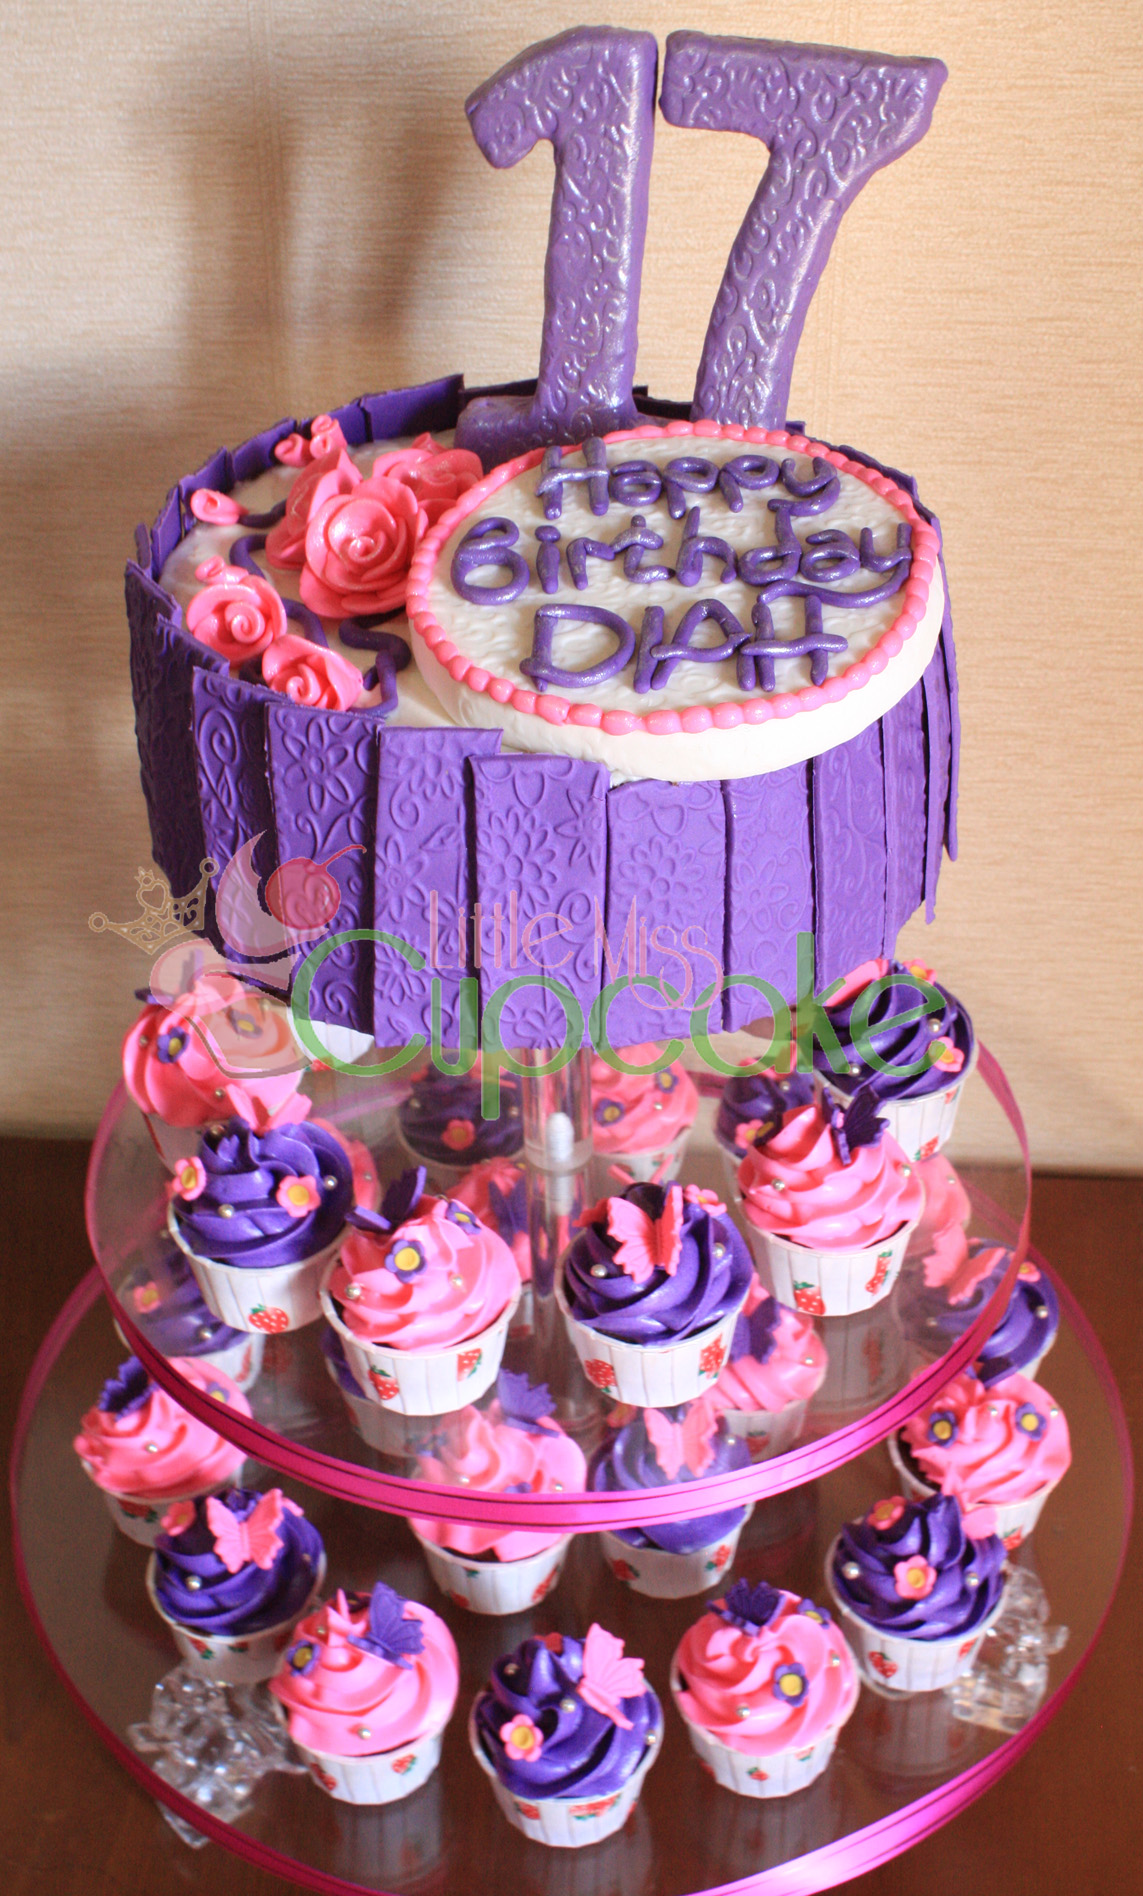 Cupcake Birthday Cakes for Girls